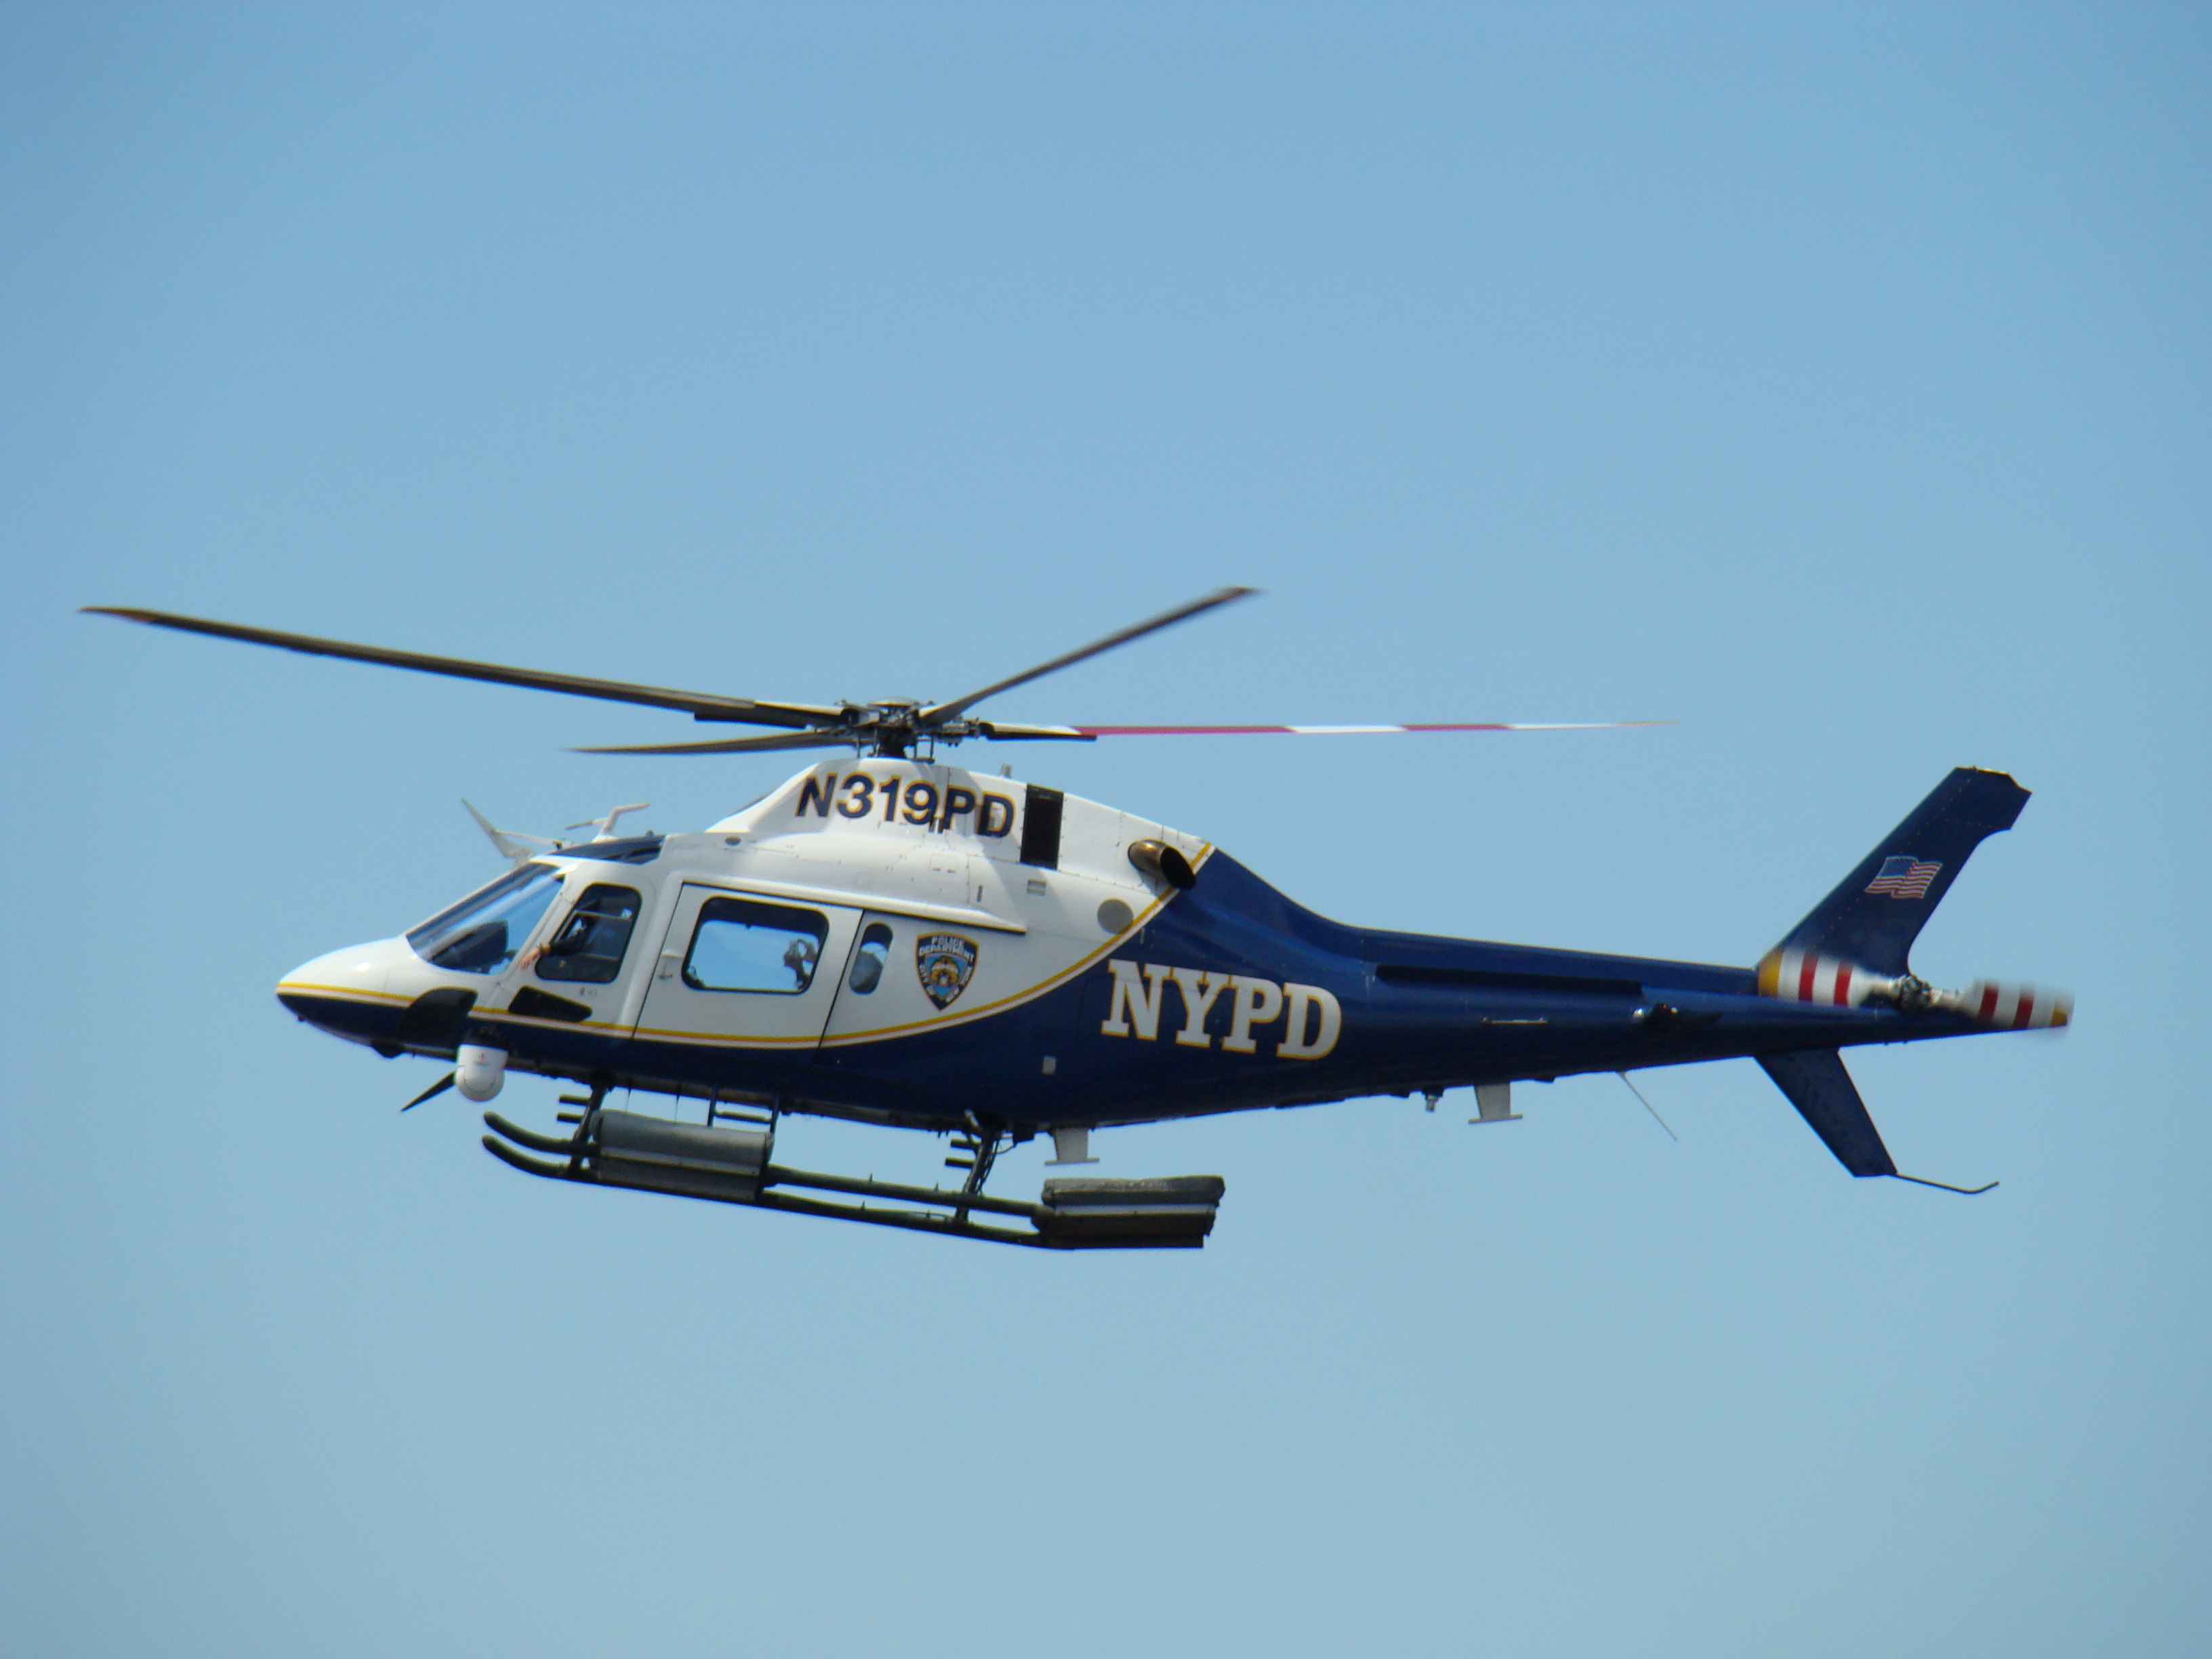 helicopers toy with File Nypd Helicopter N319pd on Lazarevdn as well Rc helicopter besides File NYPD helicopter N319PD further Search moreover List of united states military helicopters.